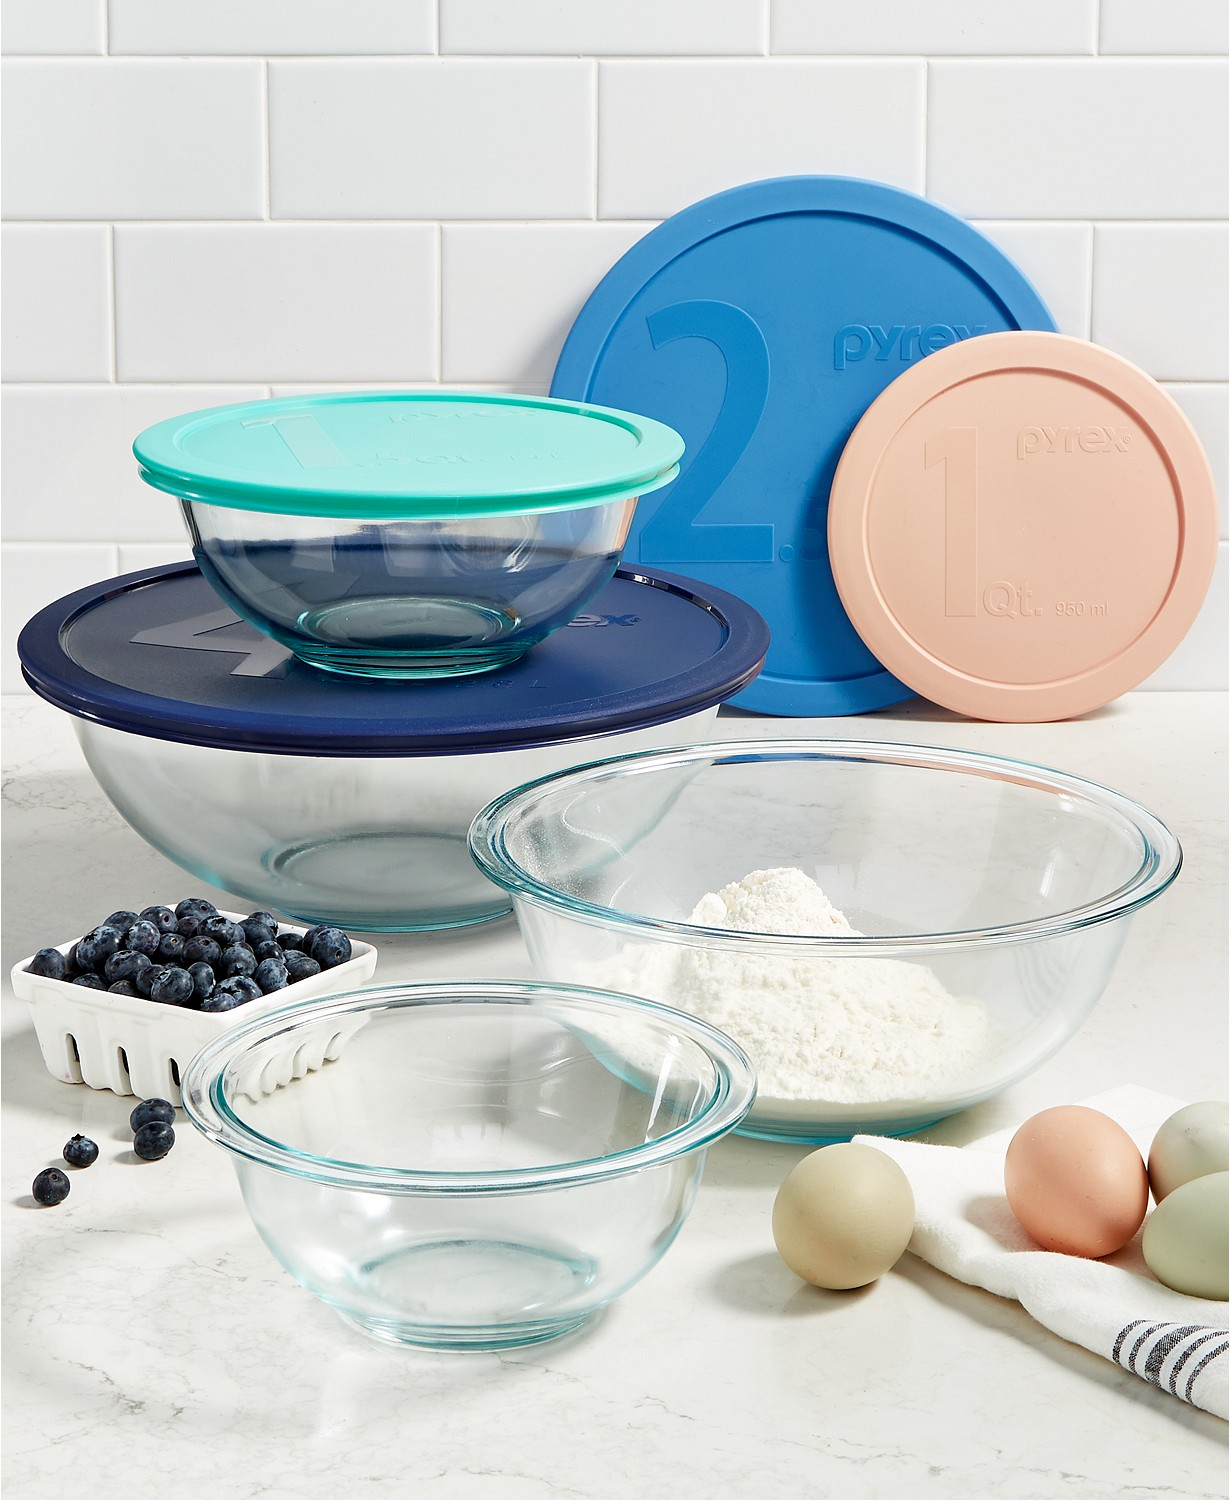 8-Pc. Mixing Bowl Set